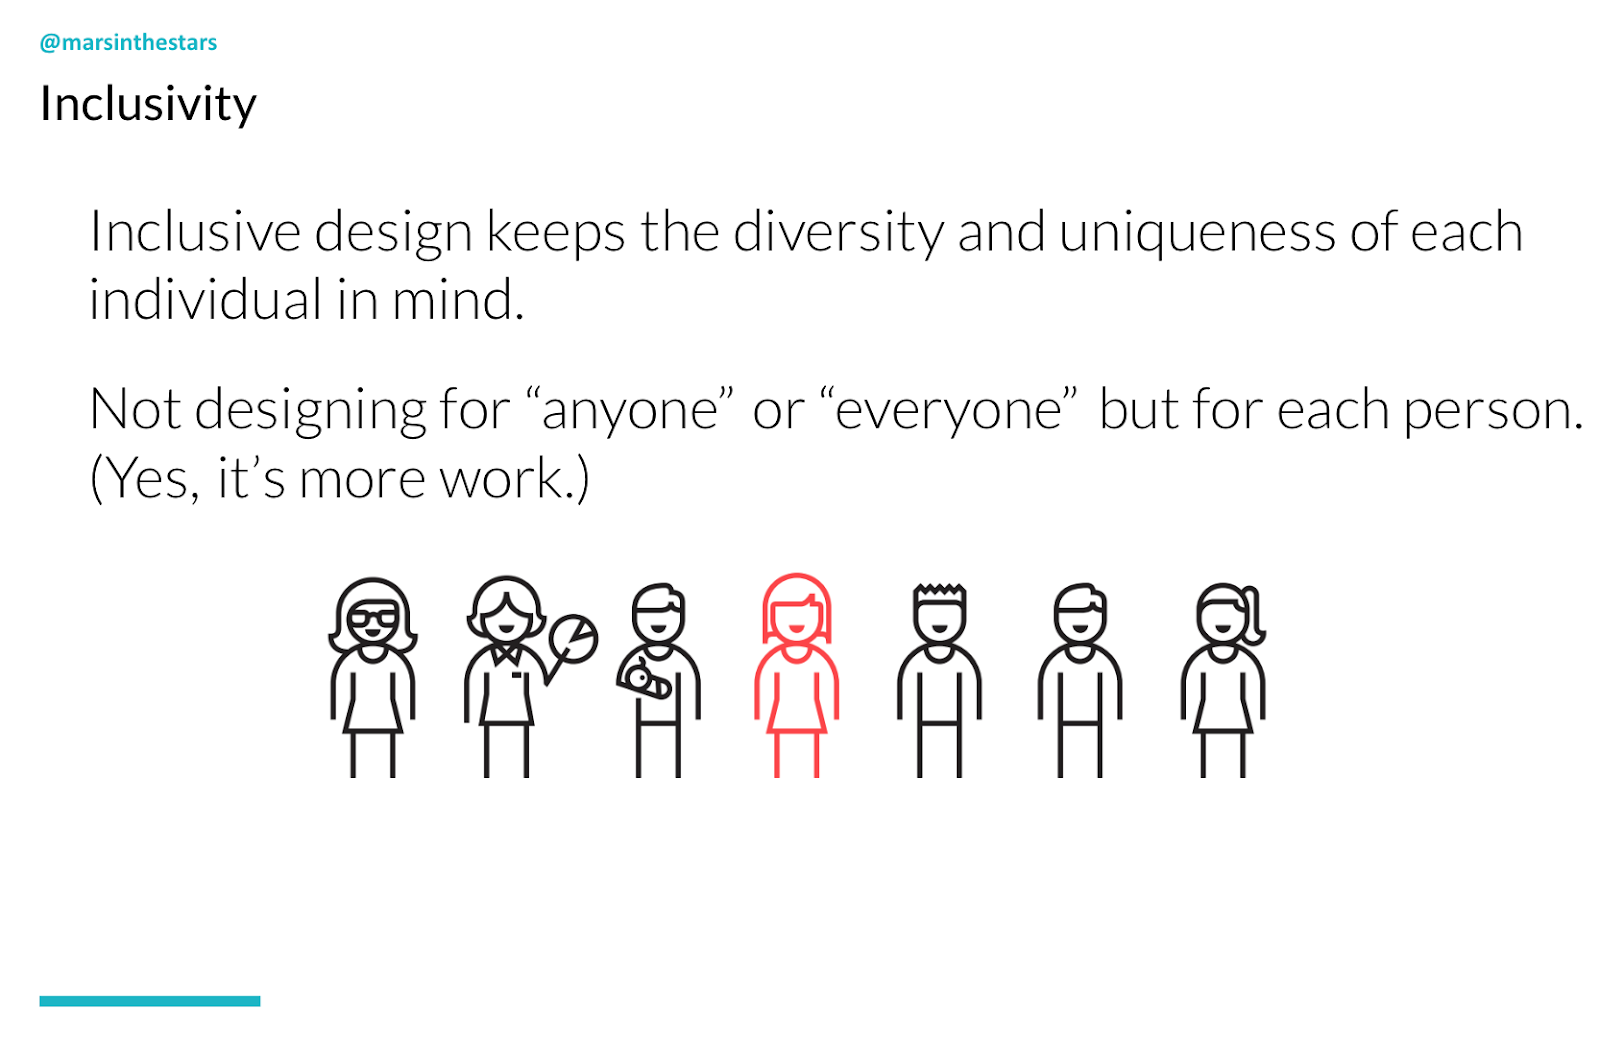 Slide shows definitions of inclusivity. 'Inclusive design keeps the diversity and uniqueness of each individual in mind.'  'Not designing for anyone, or everyone, but for each person.' (Yes, it's more work)